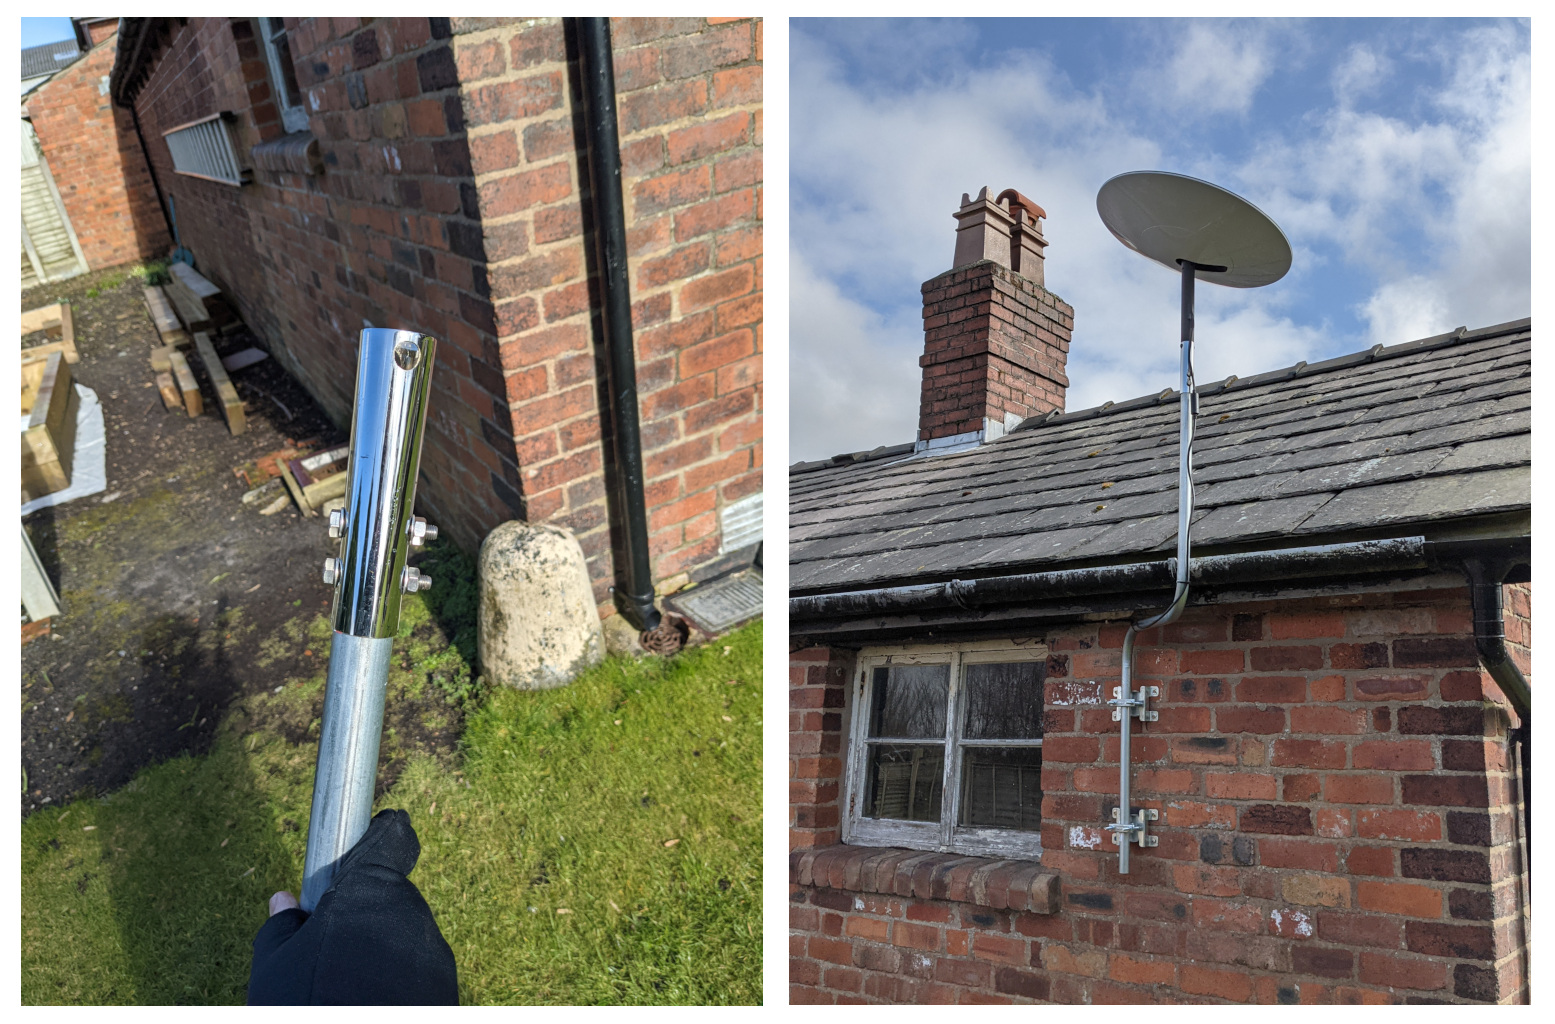 Starlink Dish Installation showing adaptor and mounting pole on building